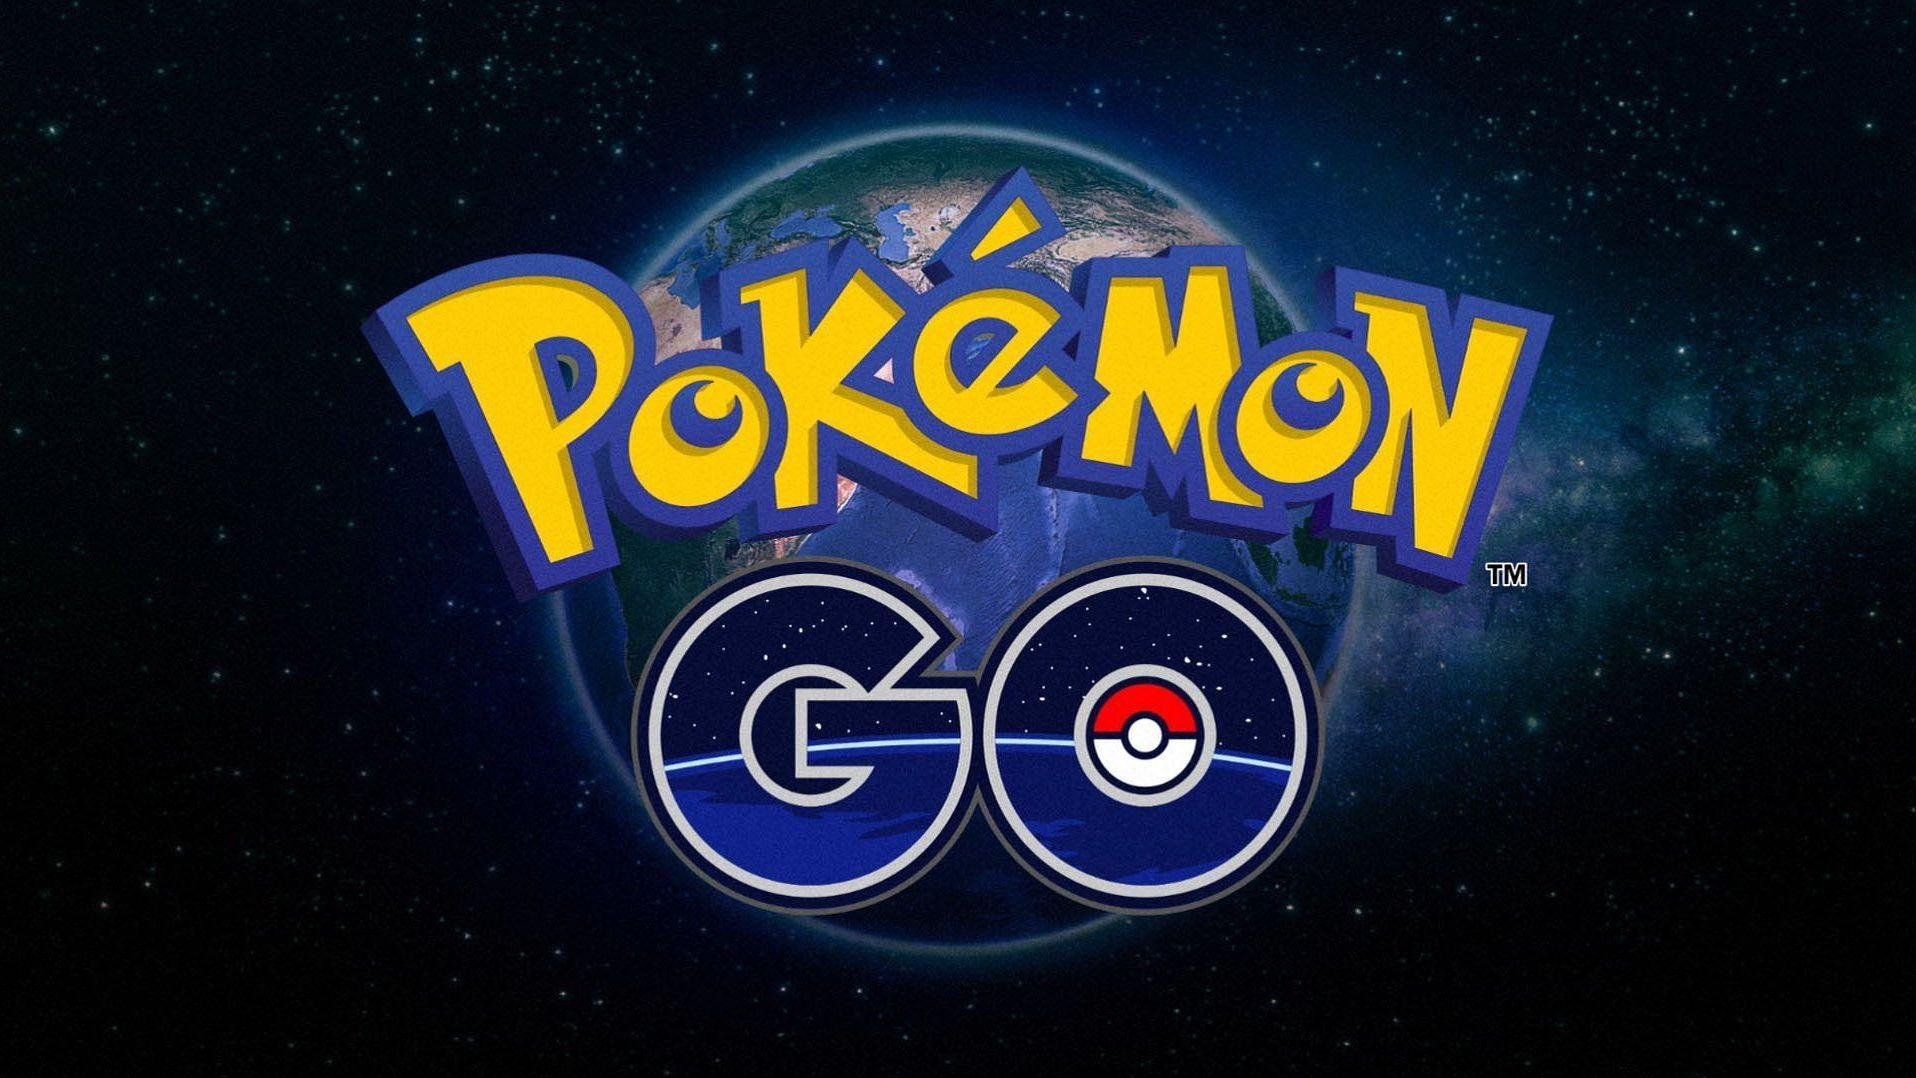 Pokemon Go's success seen spurring AR tech in mobile games